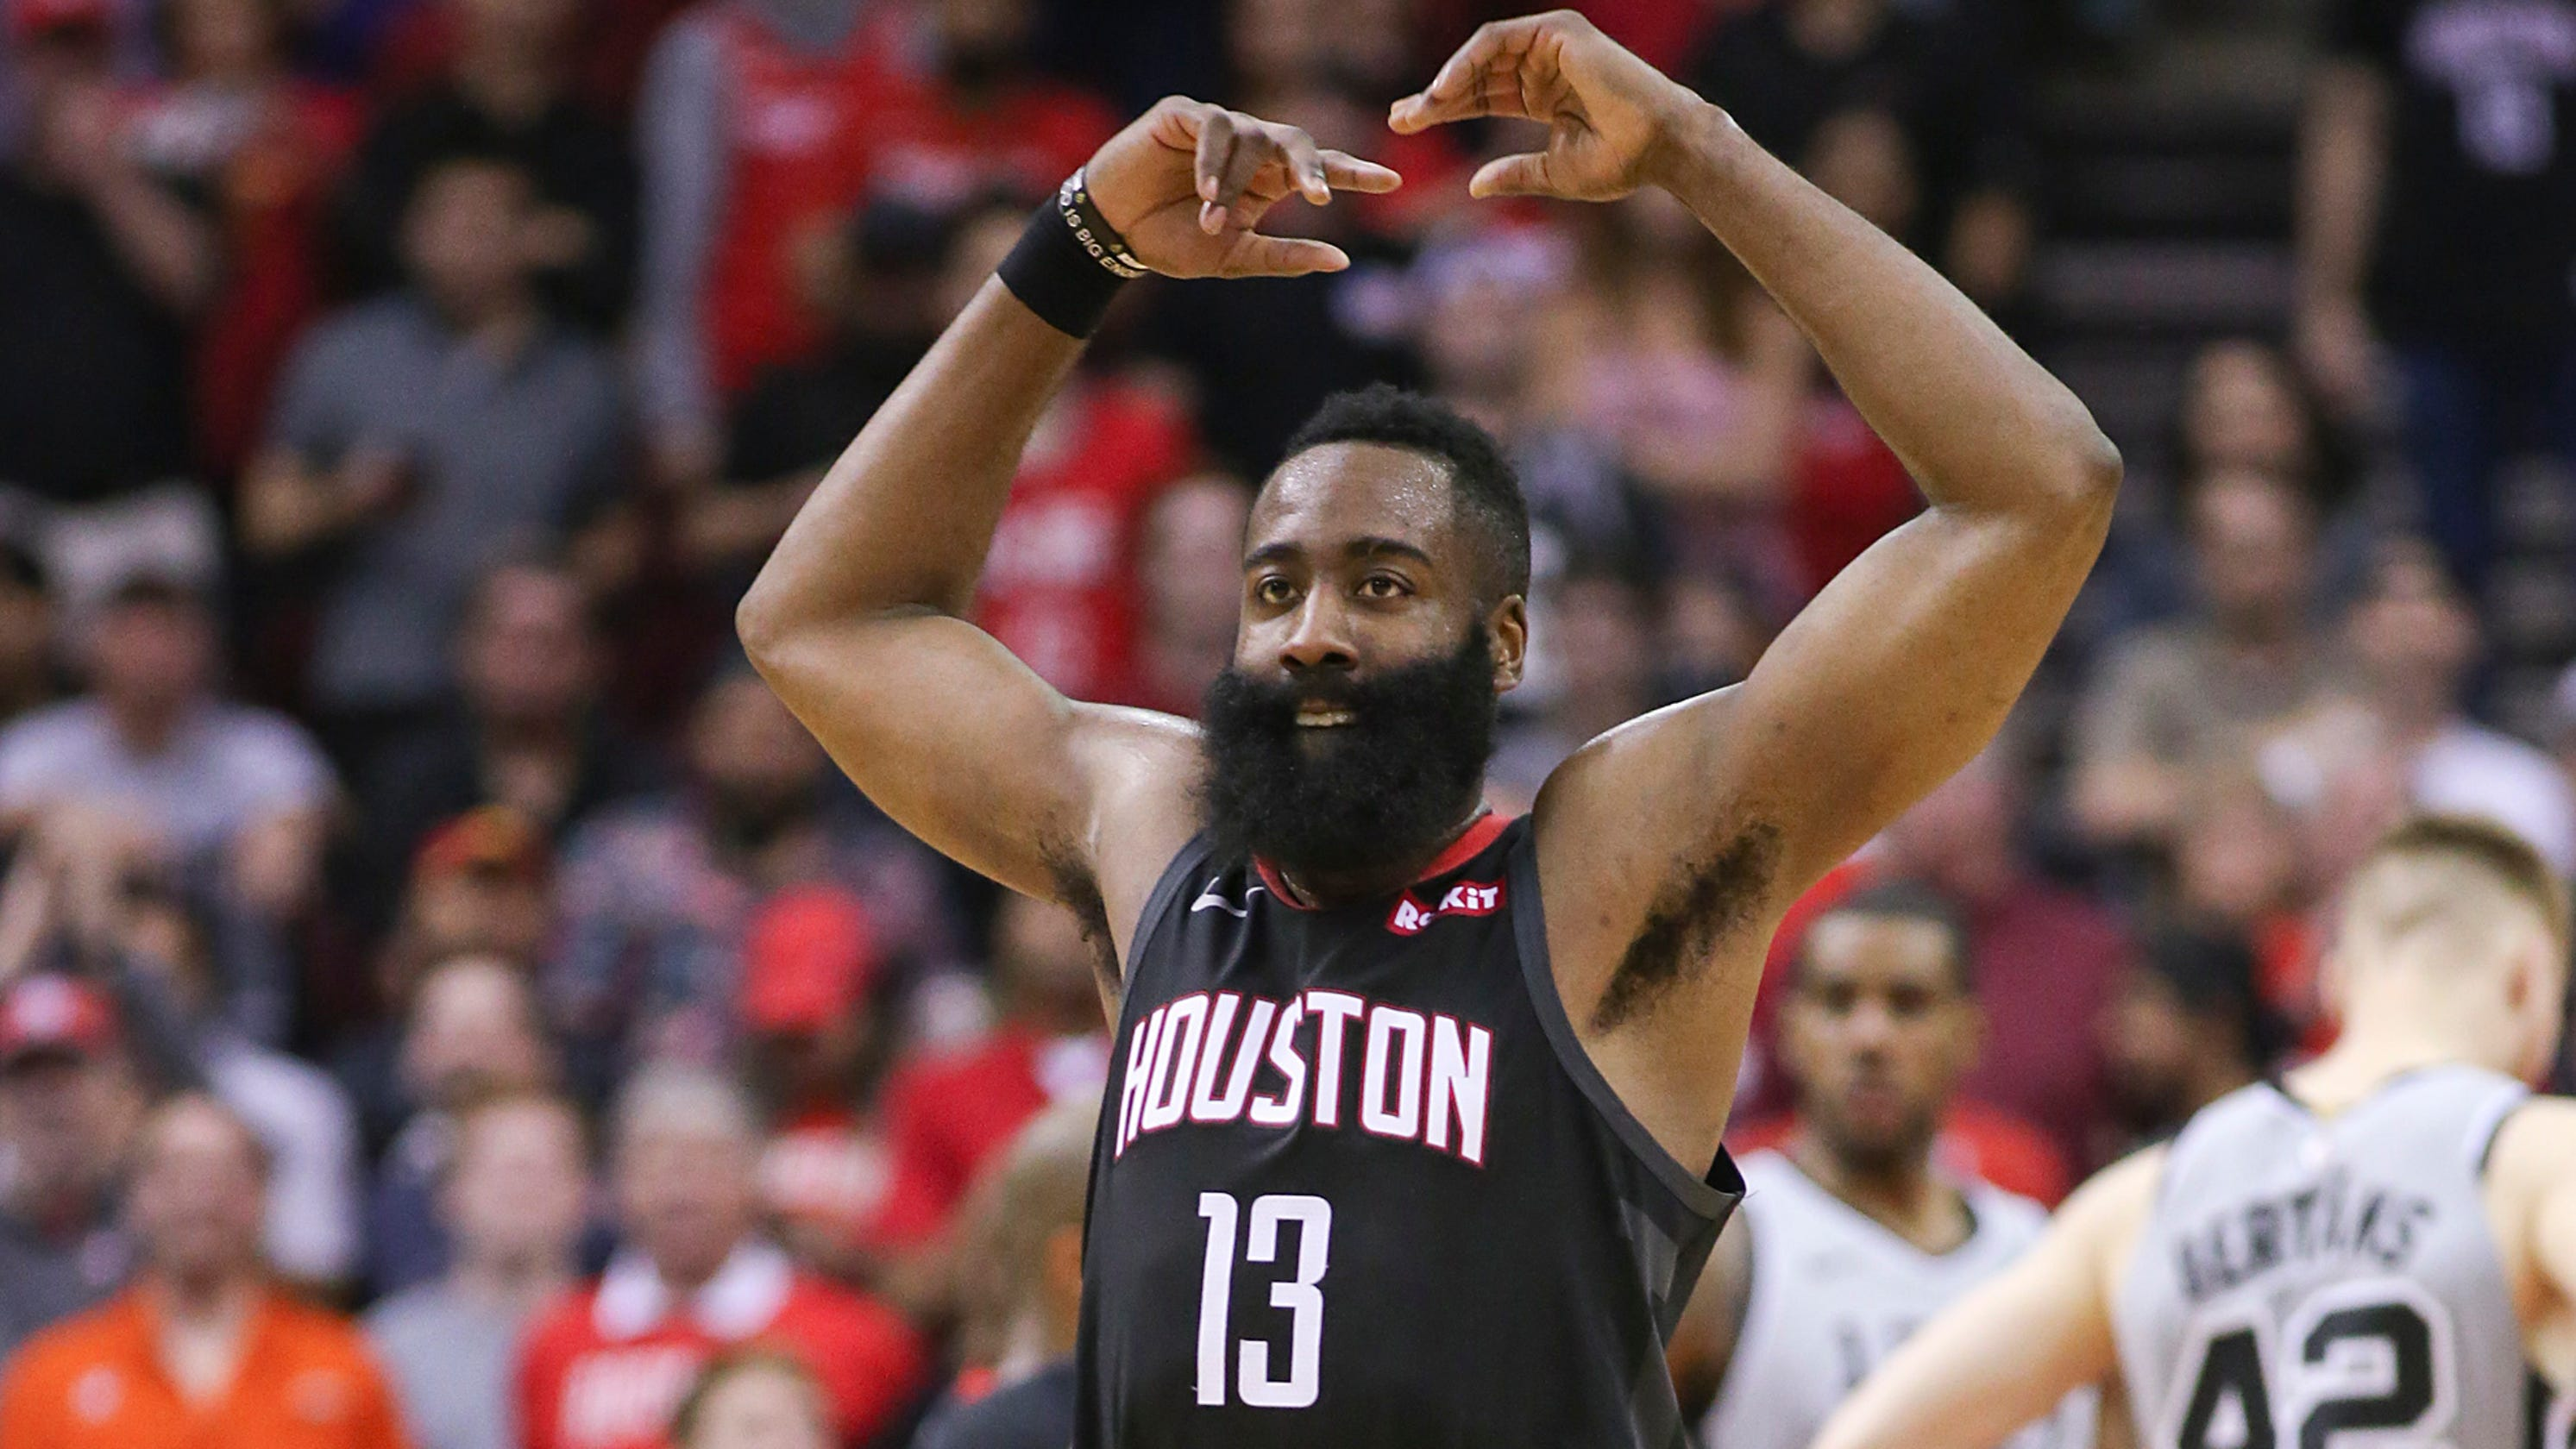 James Harden pours in 61 points to lead Rockets past Spurs